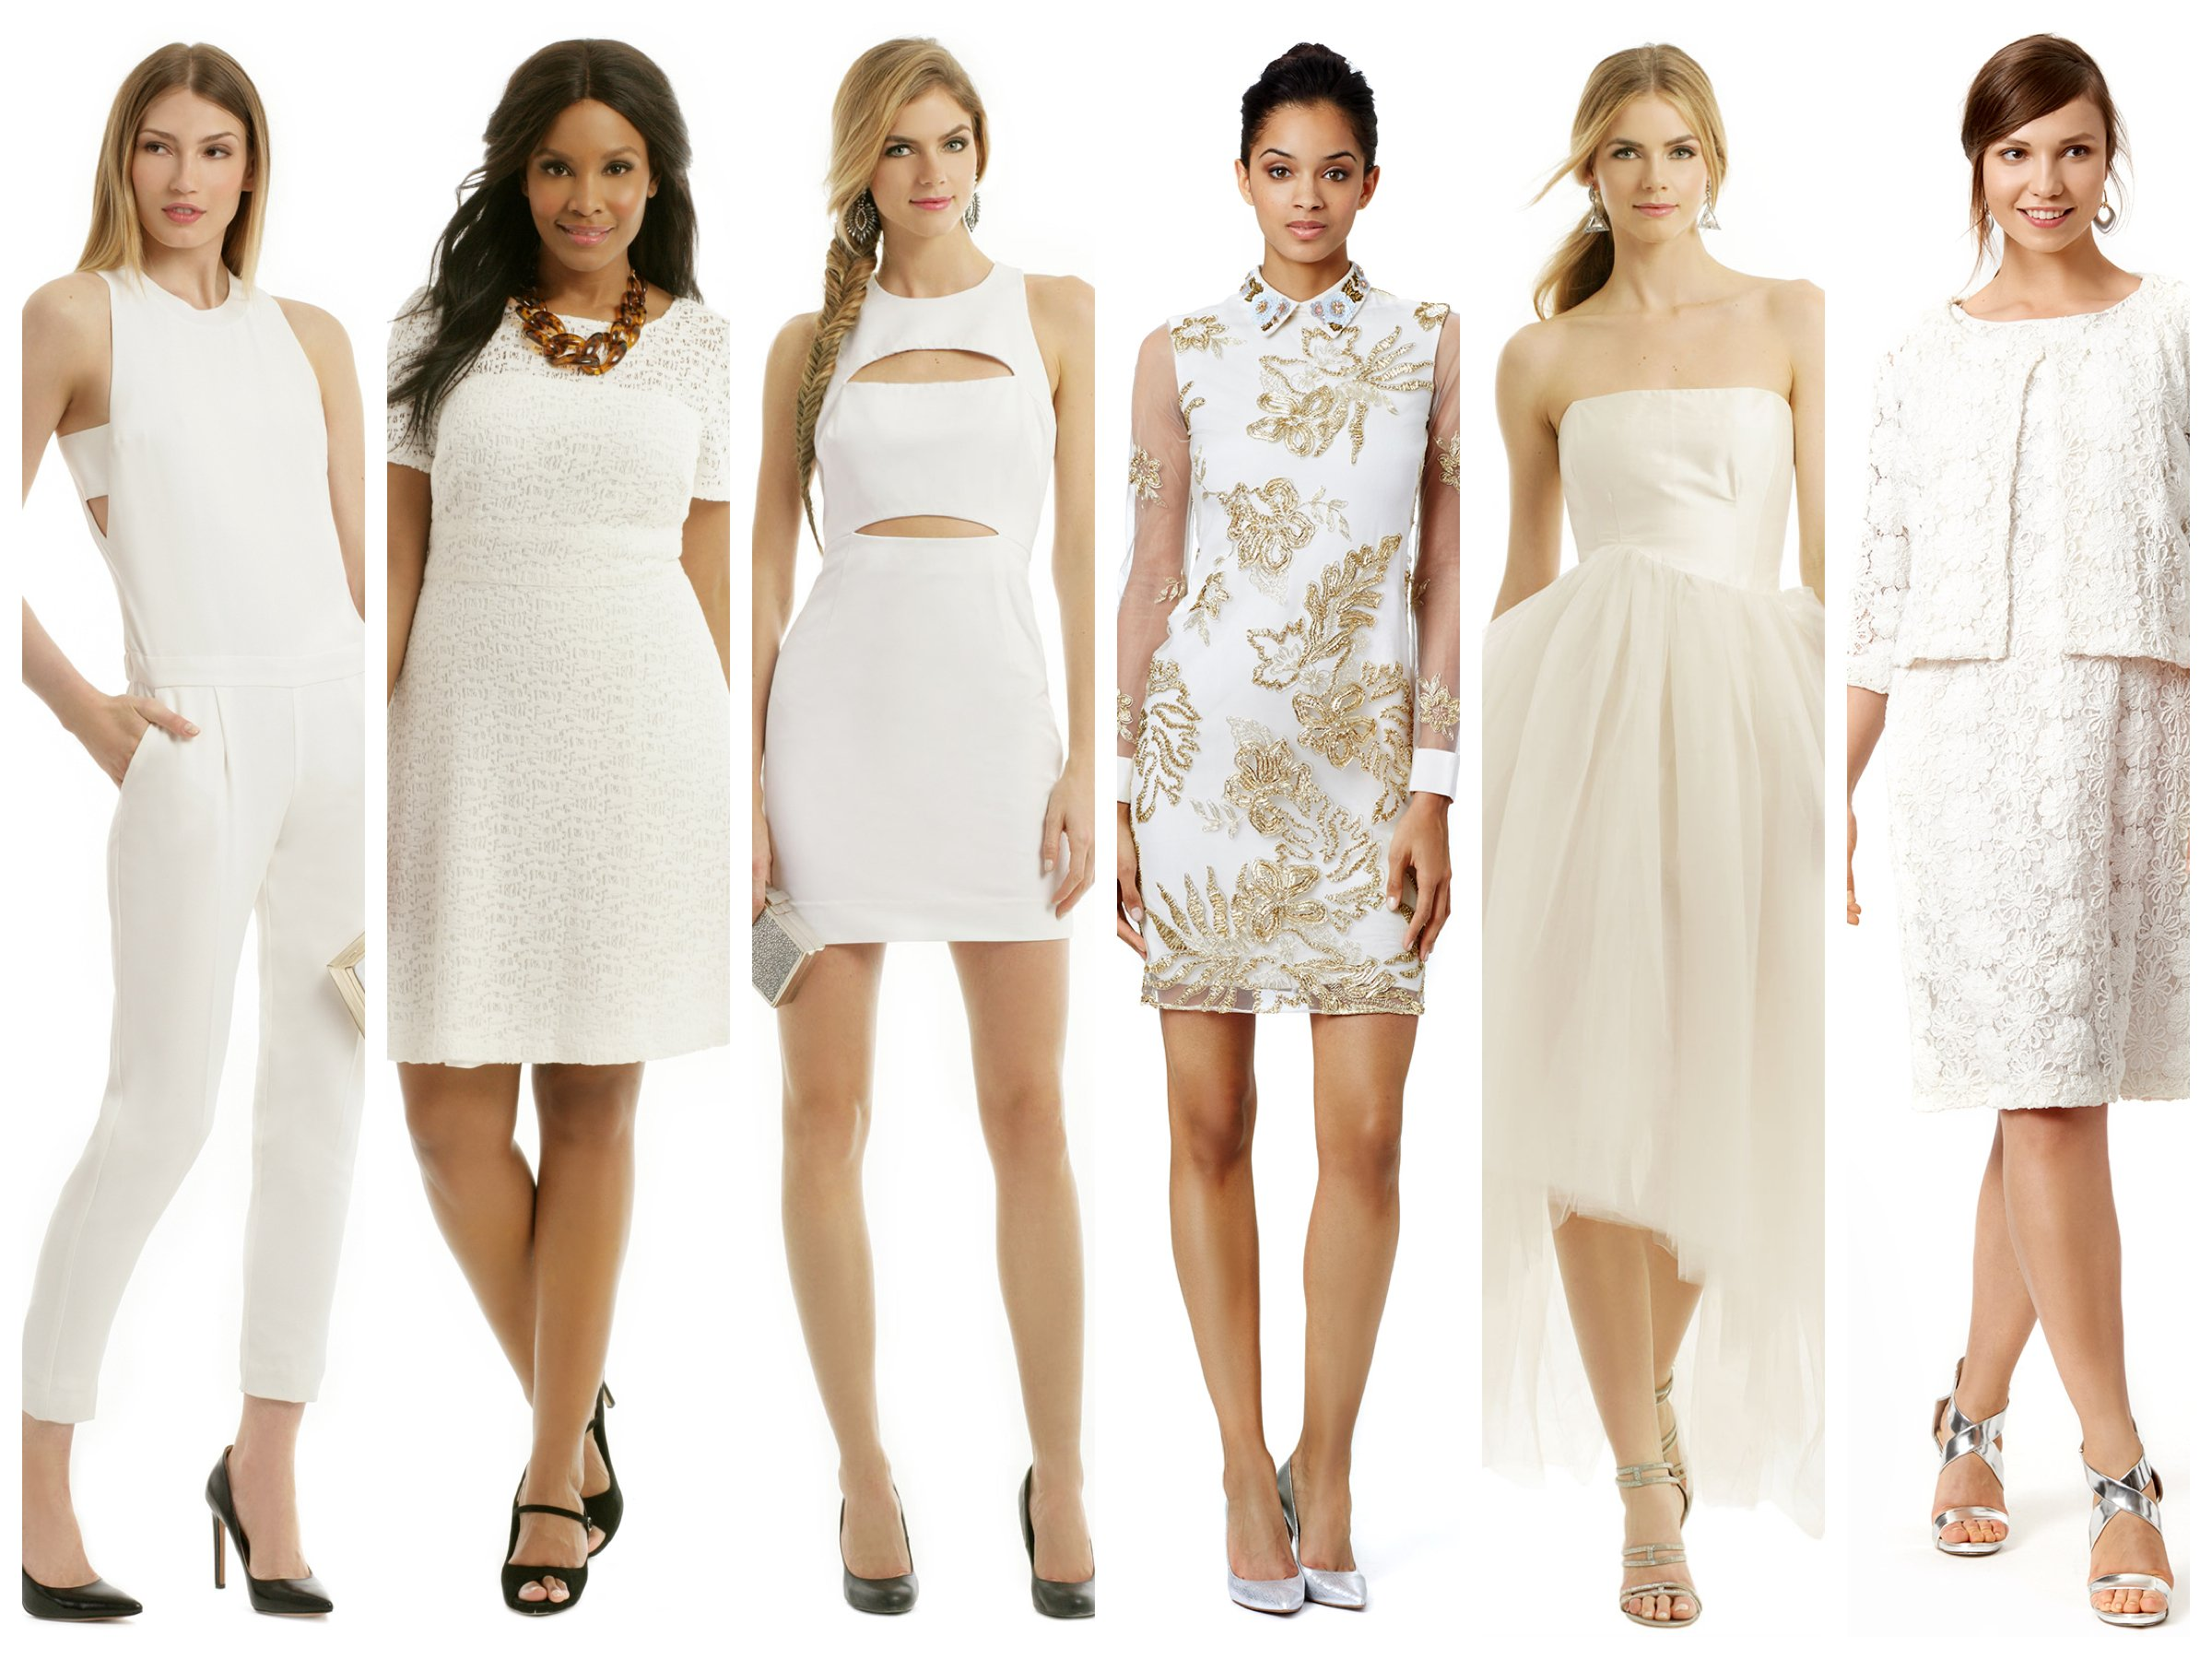 party pretty in white new year s eve dresses partyideapros com party pretty in white new year s eve